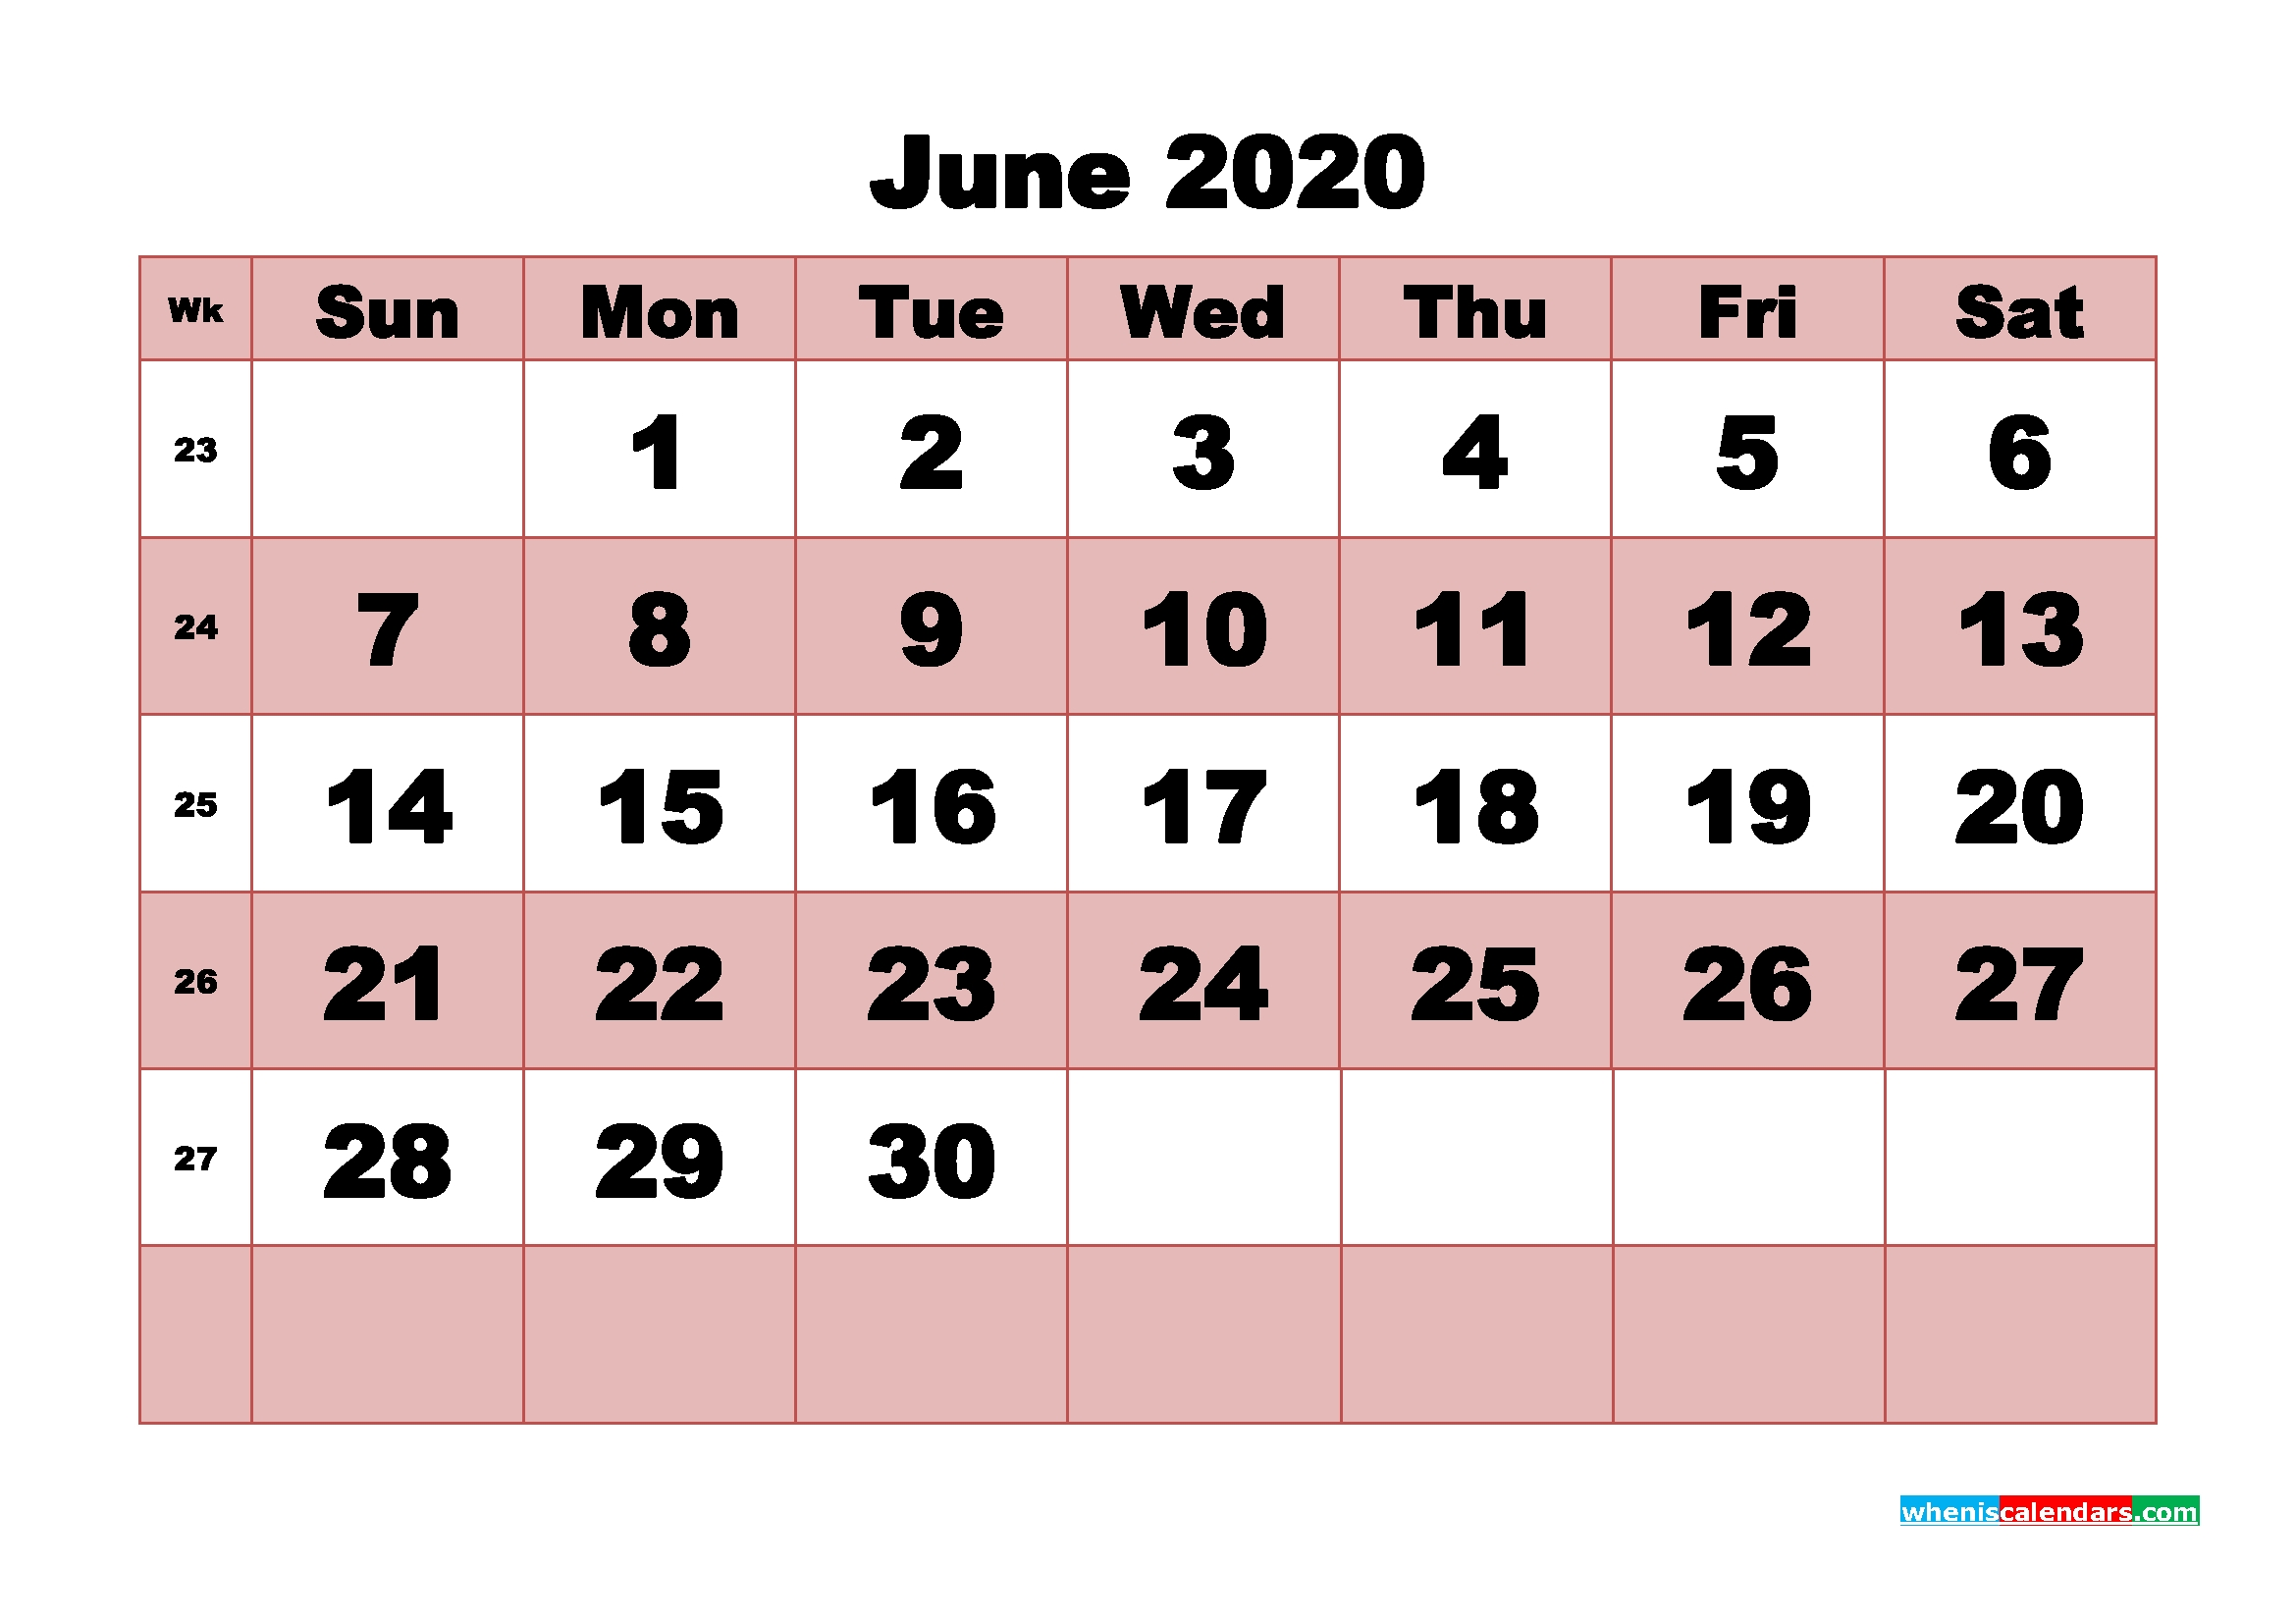 printable monthly calendar 2020 june with week numbers